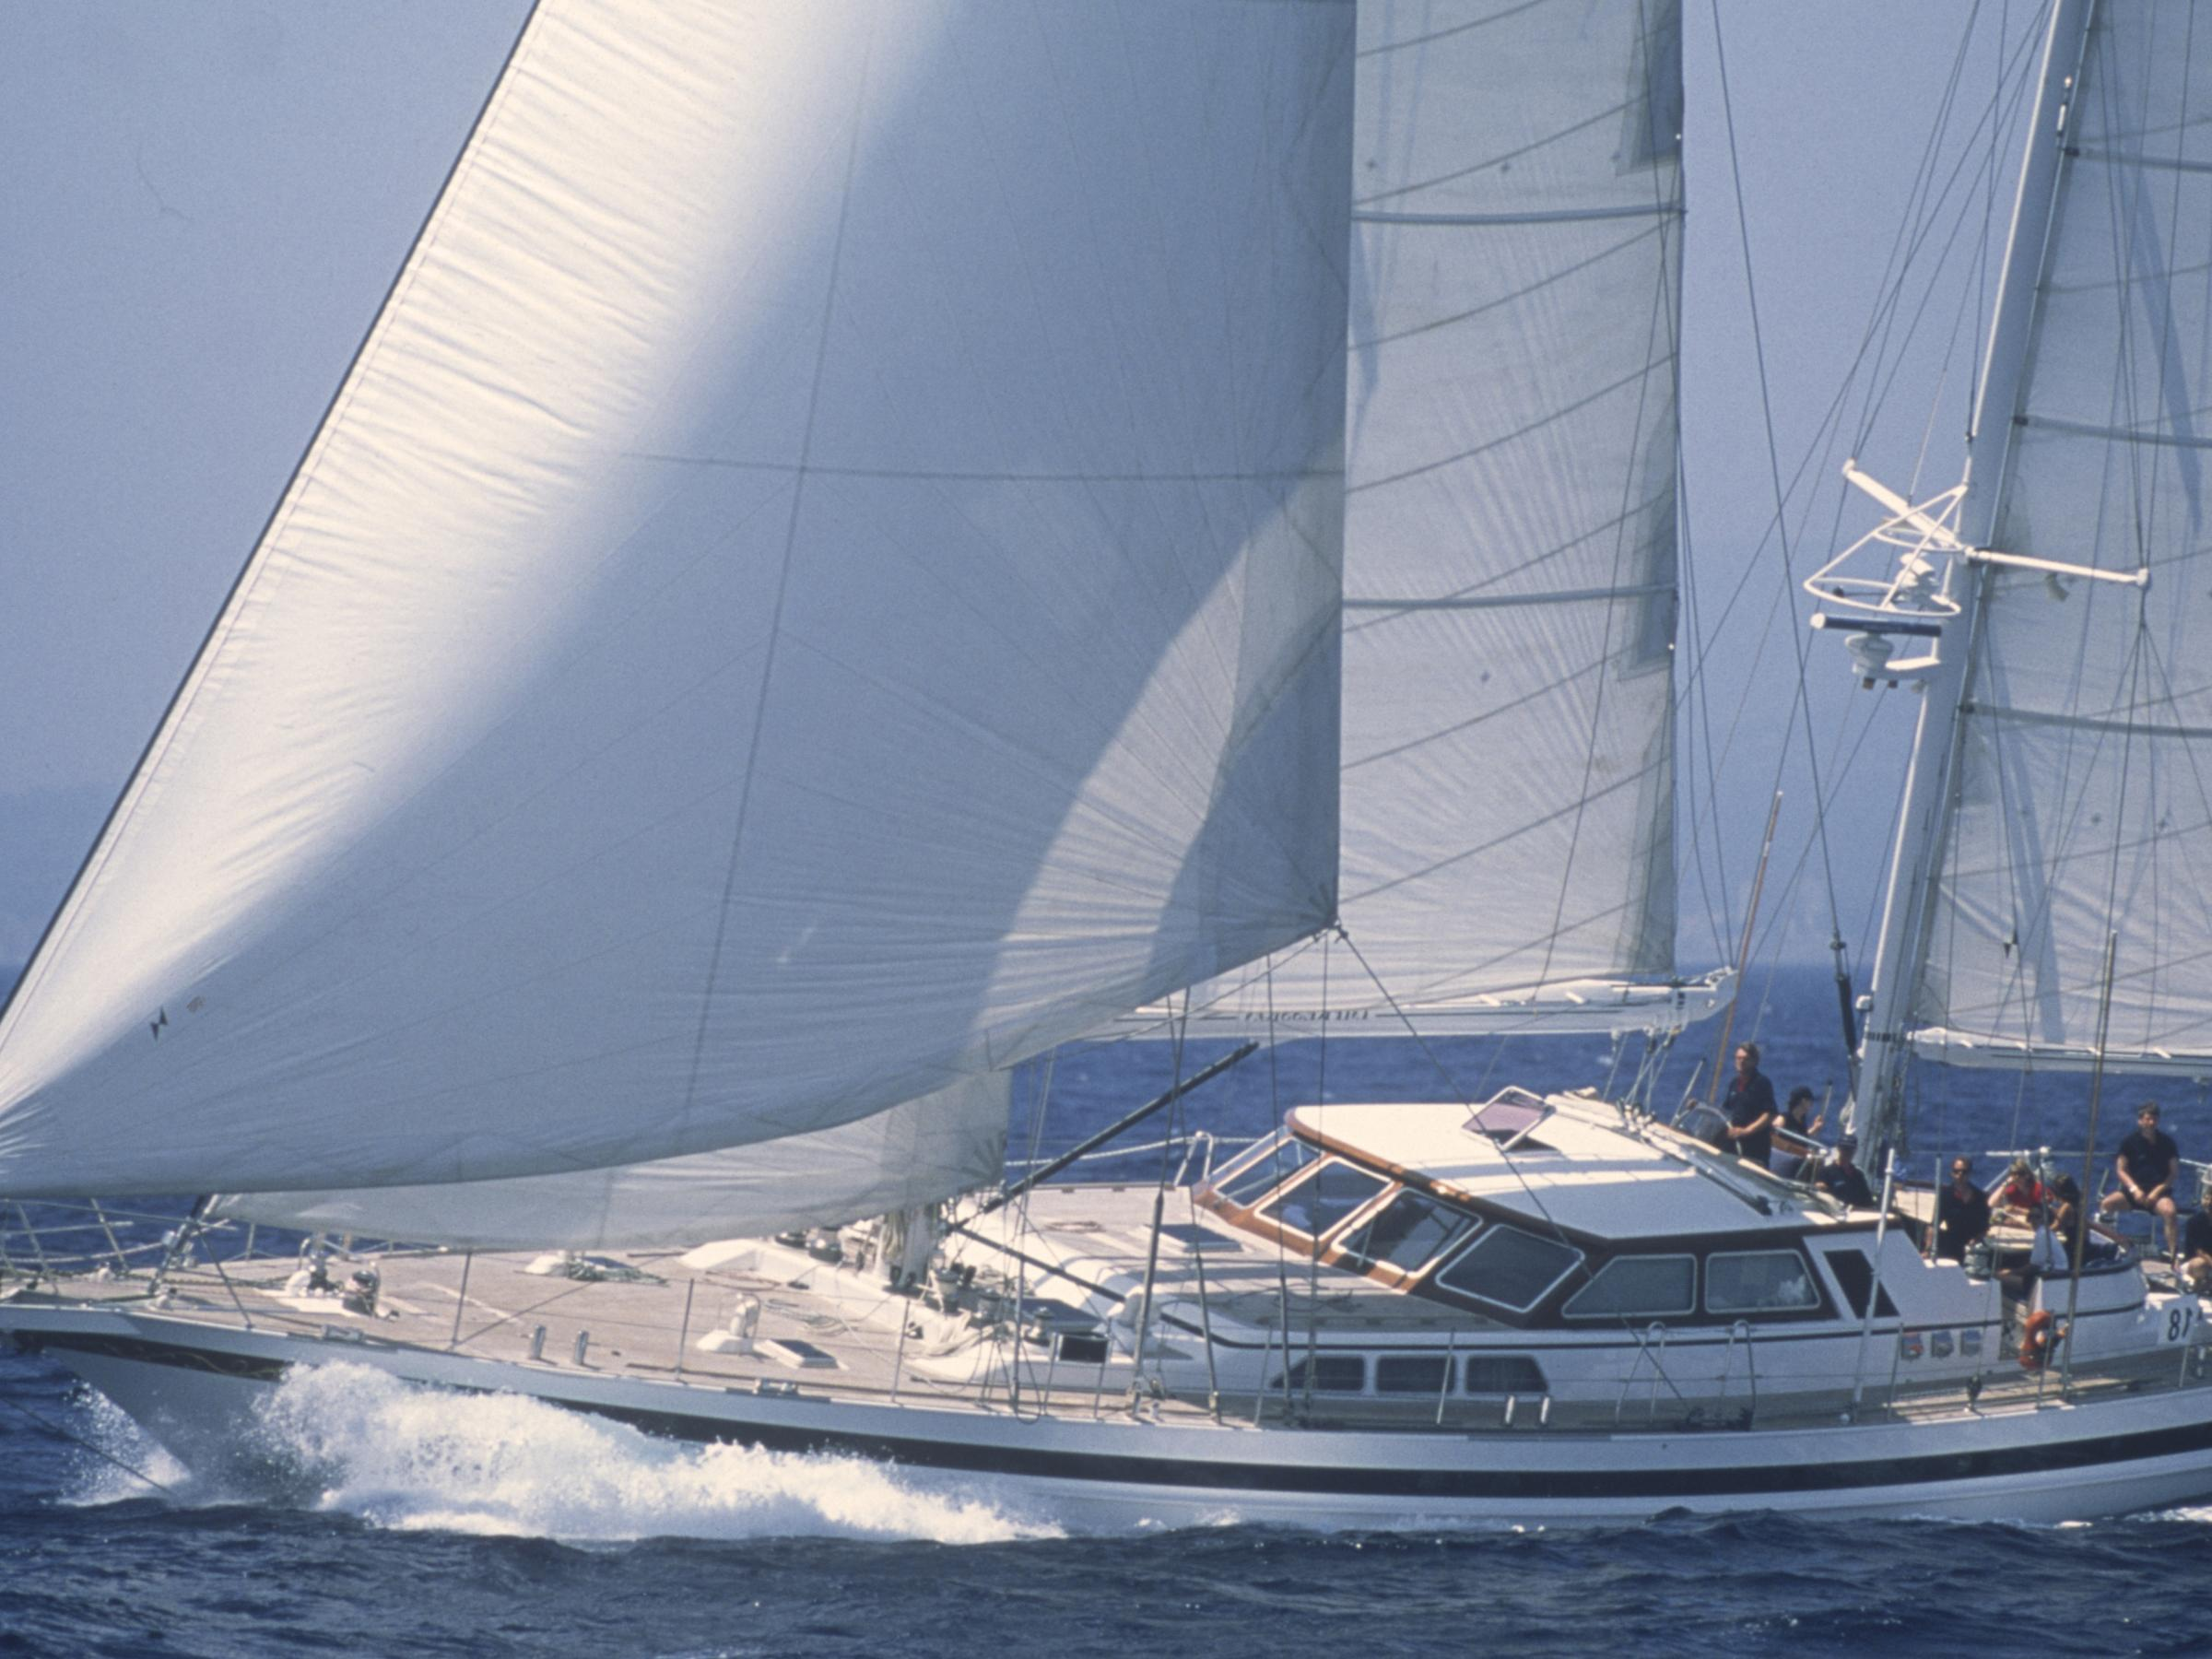 Coming Soon sailing yacht Jongert 30T ketch Impression for sale at Van der Vliet Dutch Quality Yachts